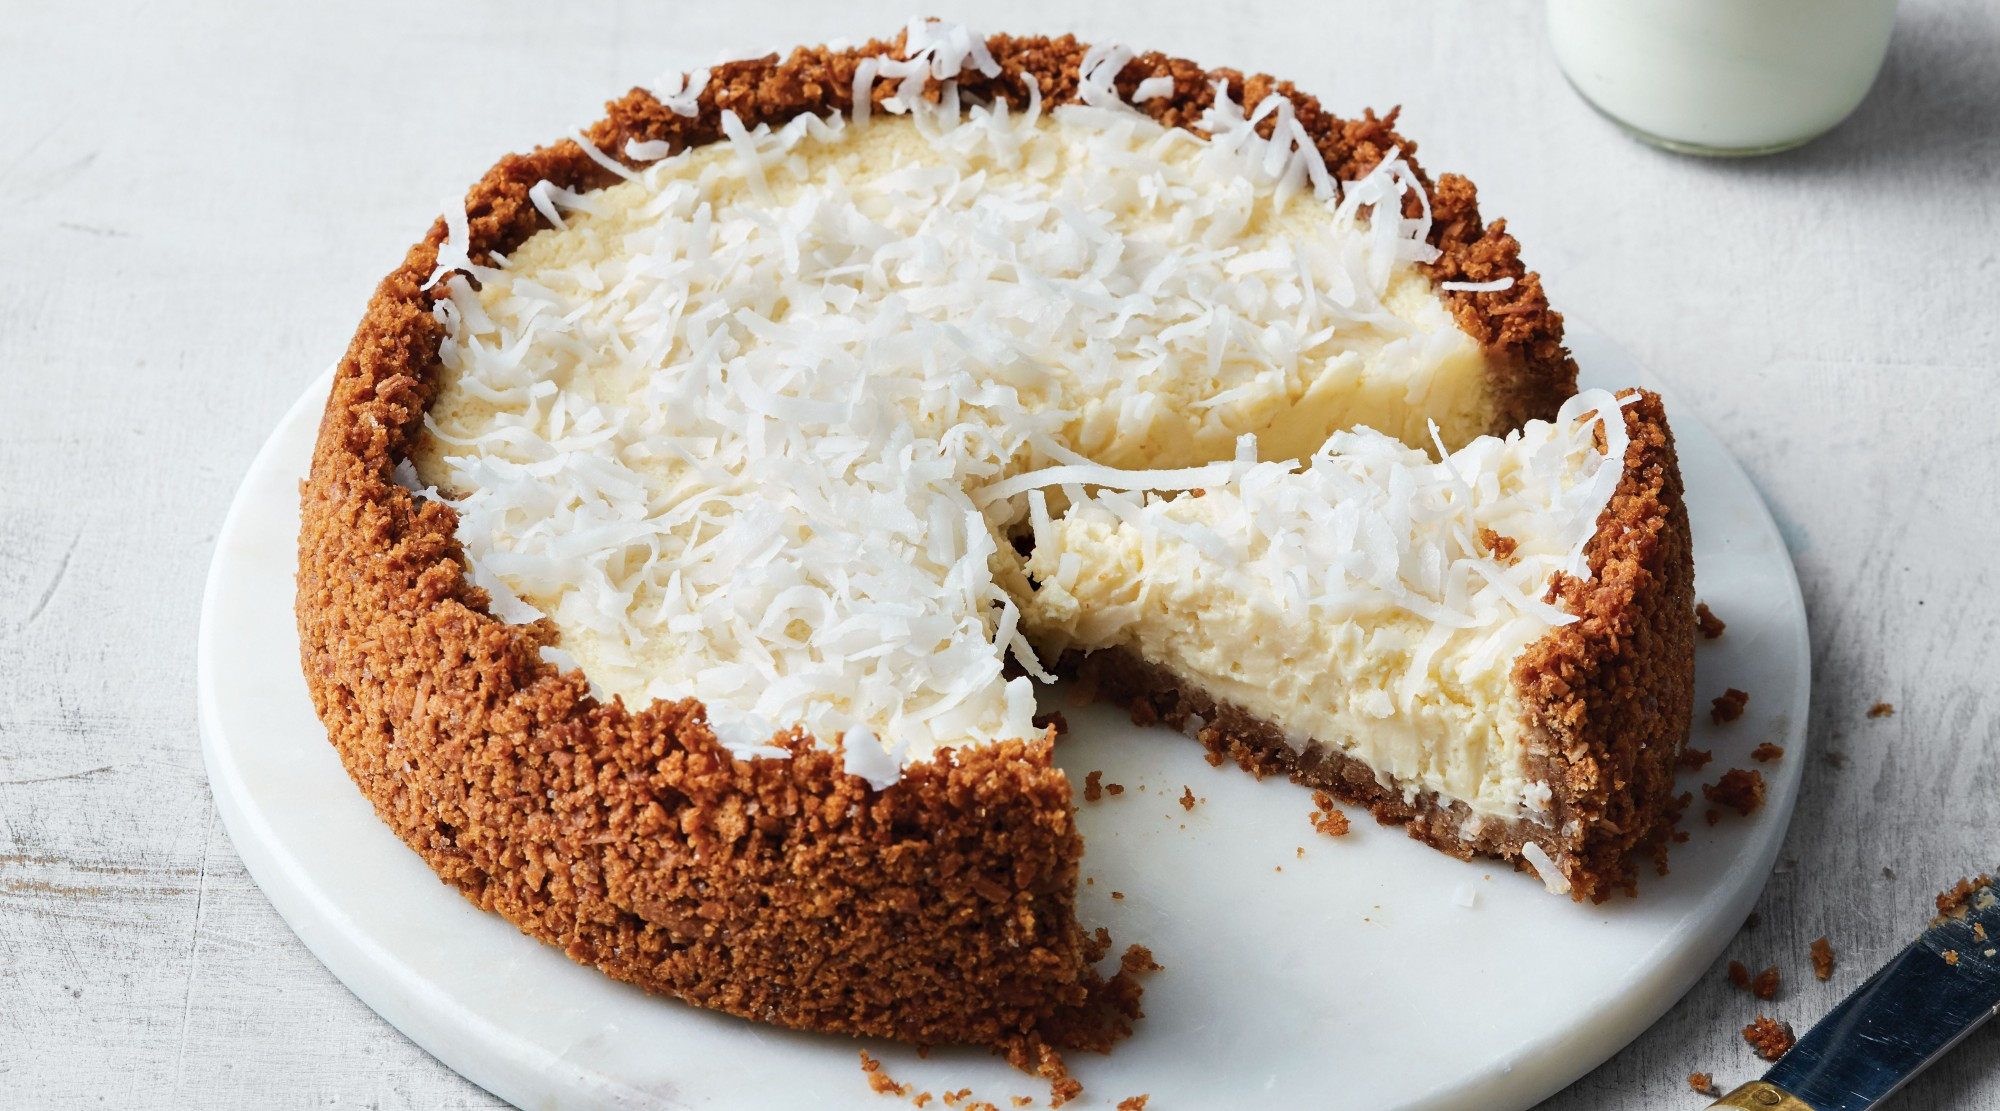 coconut-cheesecake-LEDE.jpg